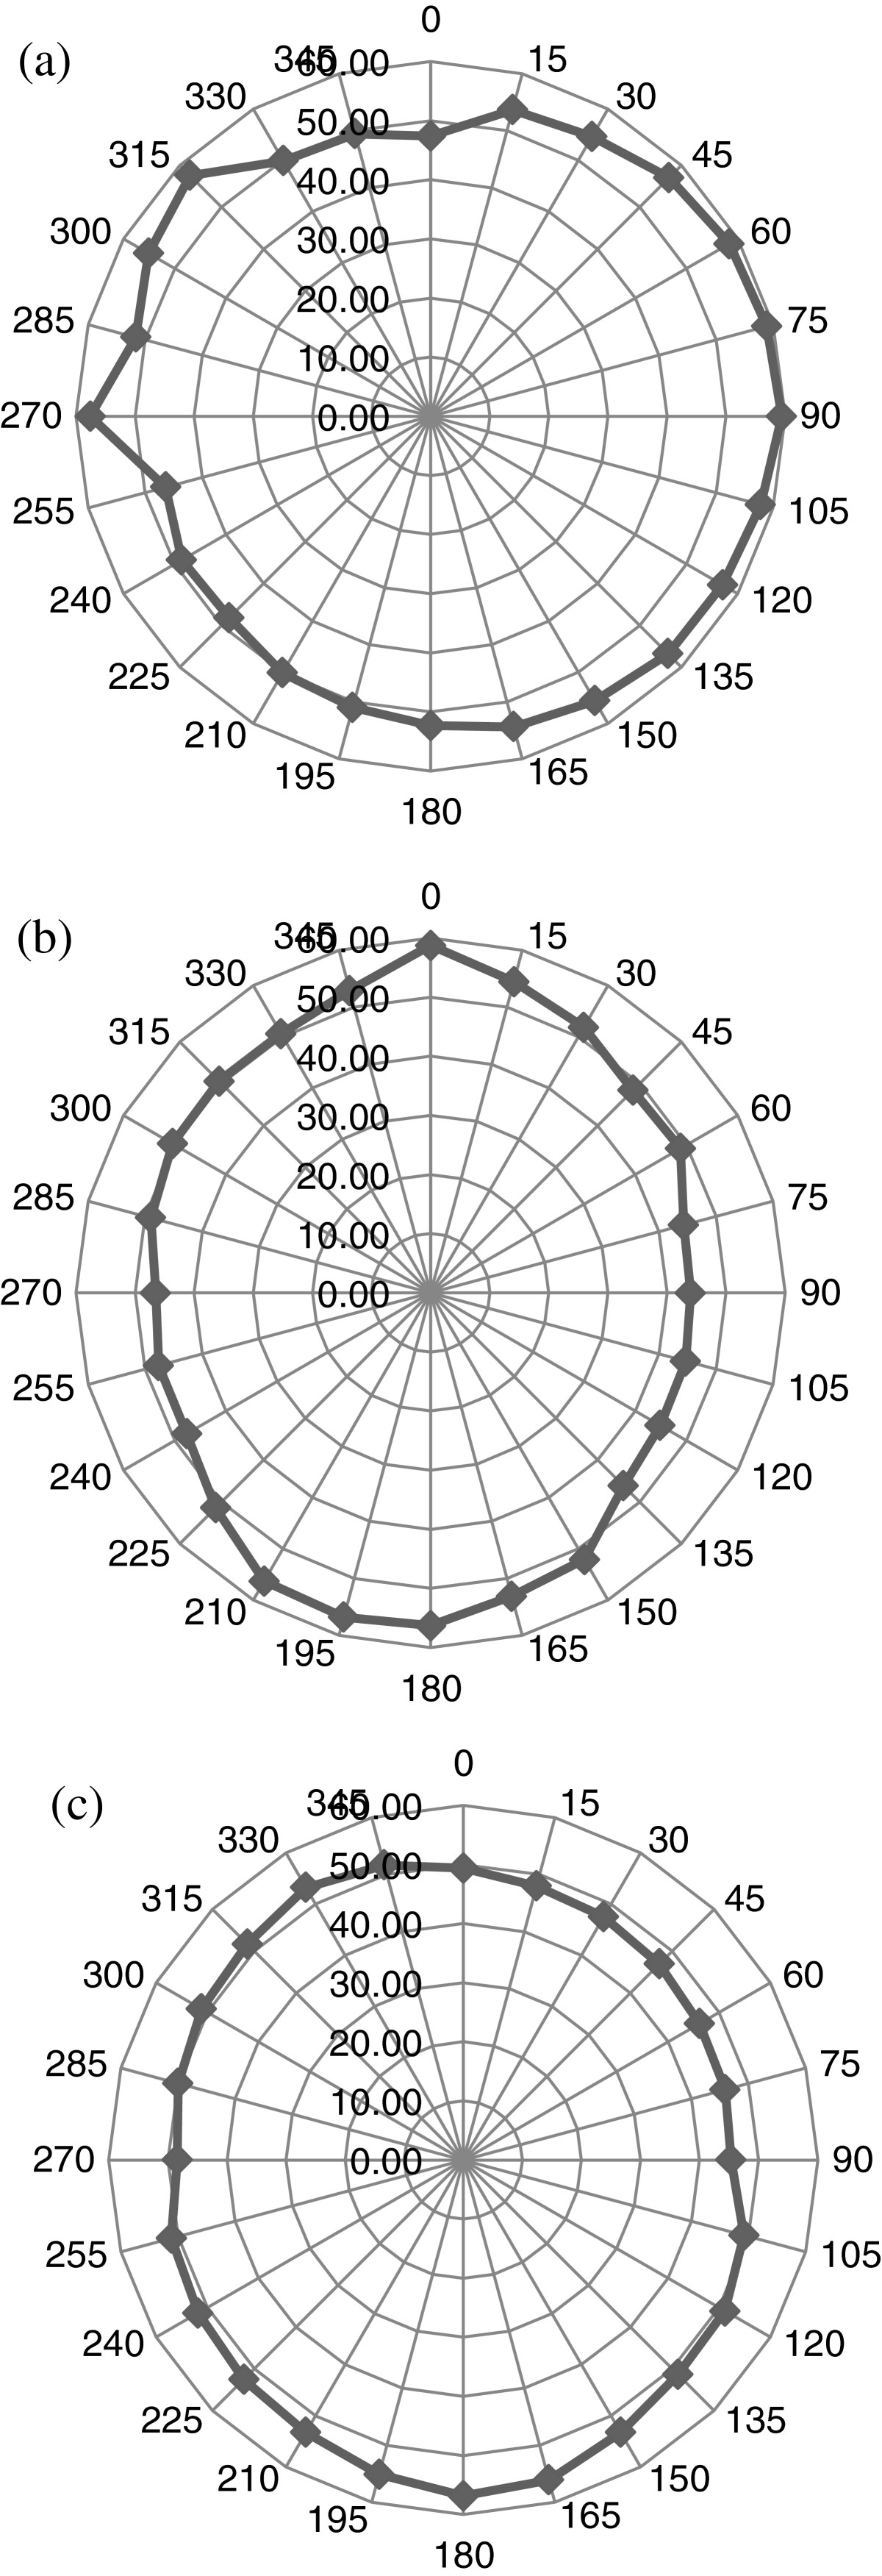 http://static-content.springer.com/image/art%3A10.1186%2F2050-5736-1-5/MediaObjects/40349_2012_Article_6_Fig8_HTML.jpg